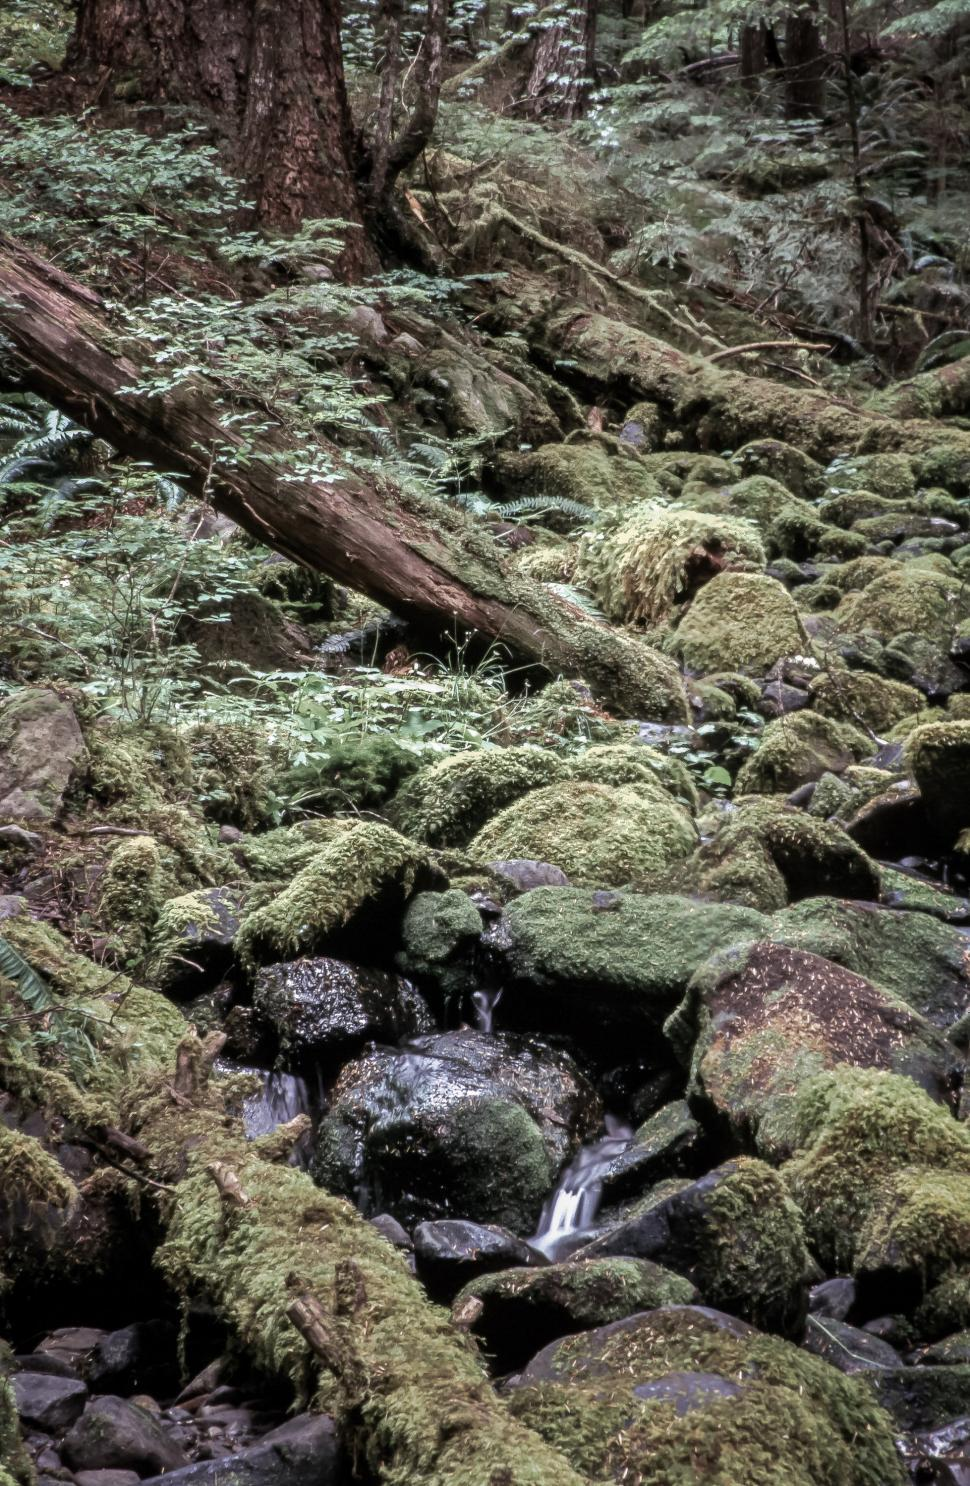 Download Free Stock HD Photo of Fern Rock Stones and waterfall Online